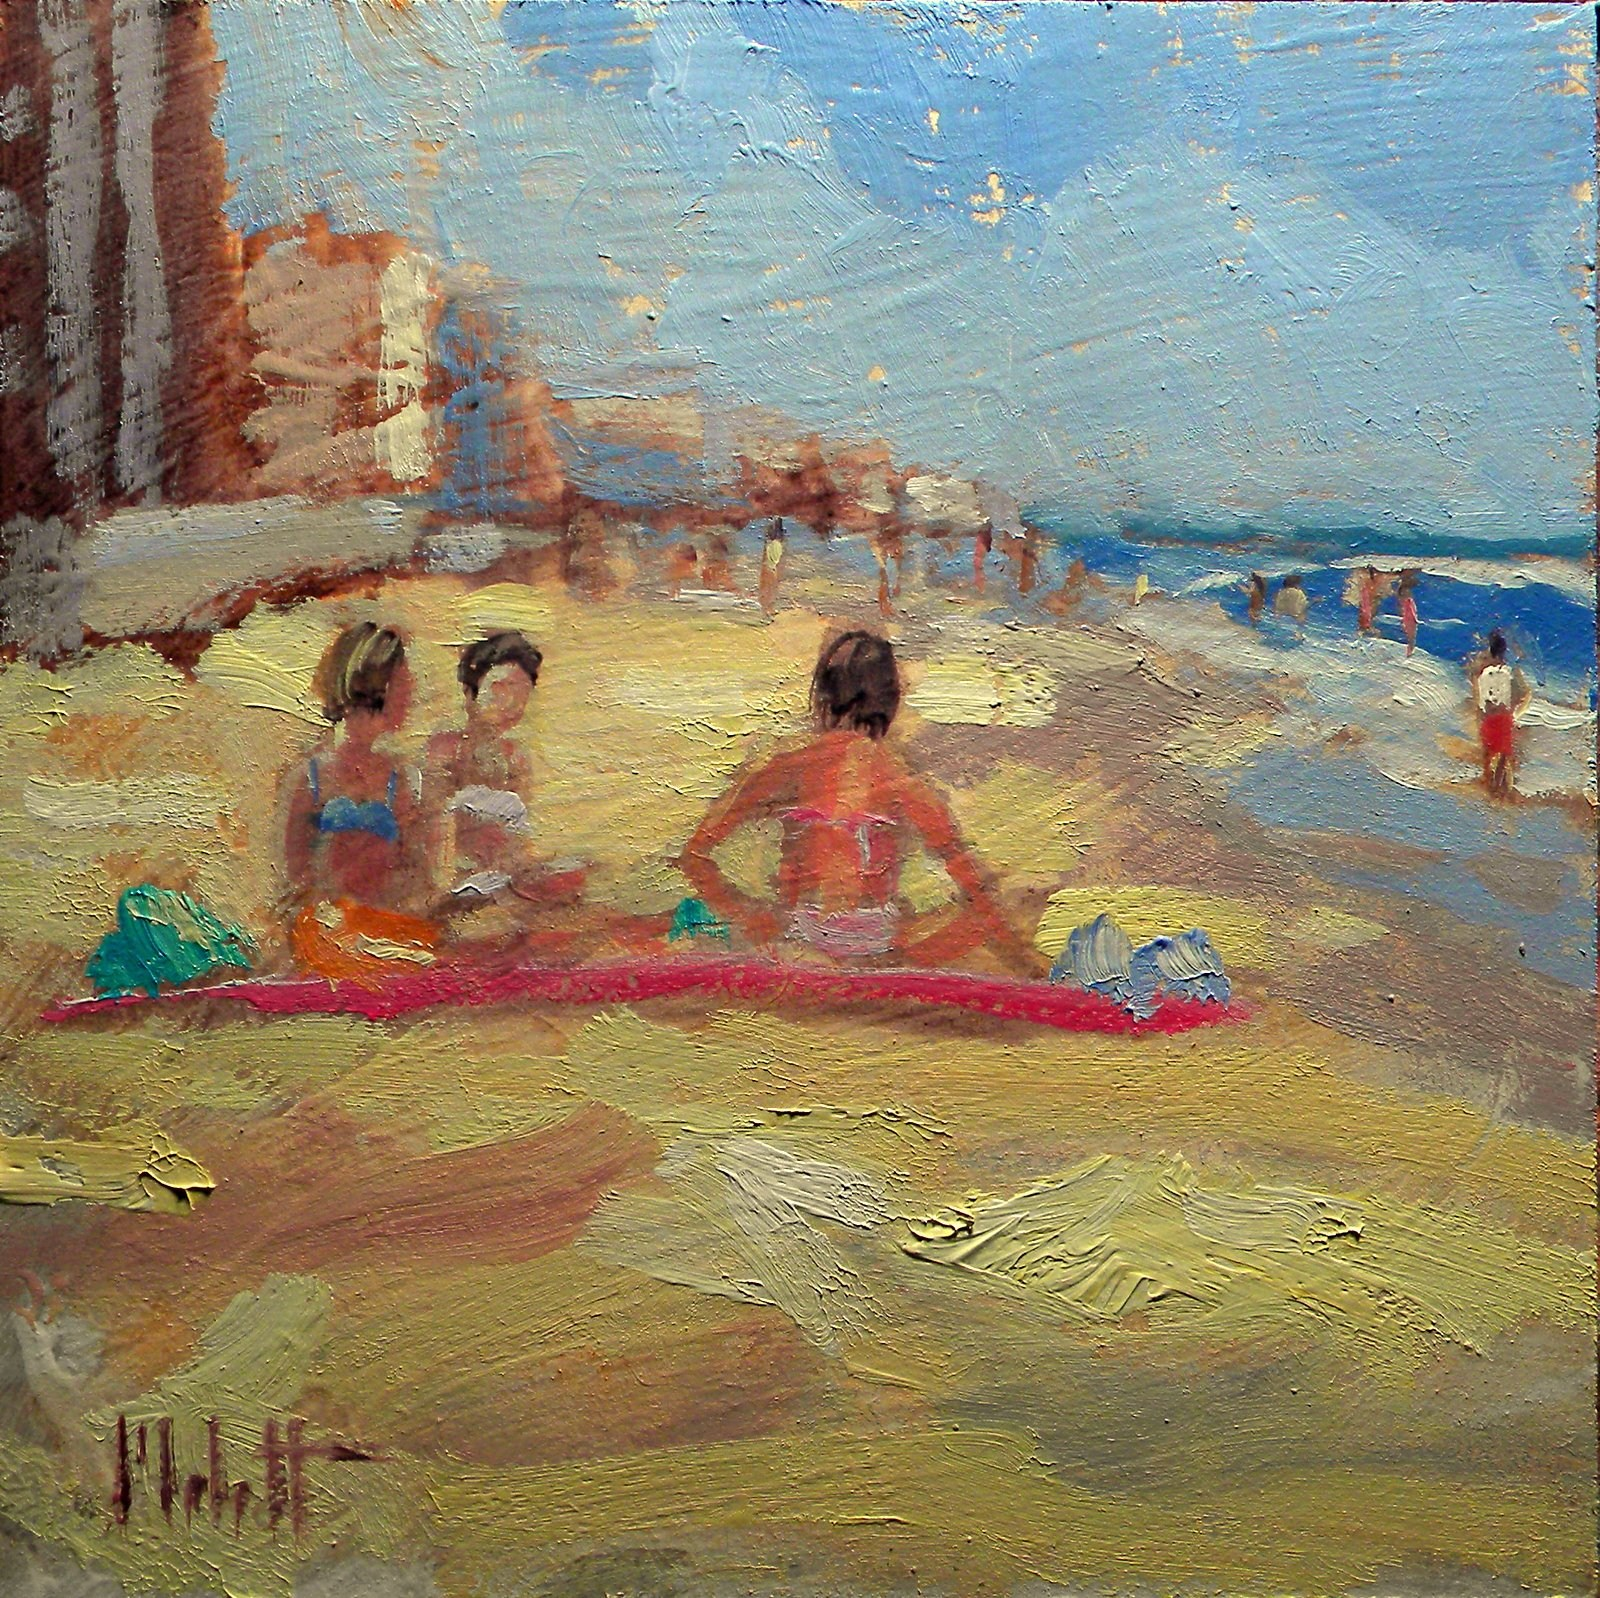 Girlfriends Beach Bikinis Happy Hour Daily Oil Painting Heidi Malott original fine art by Heidi Malott